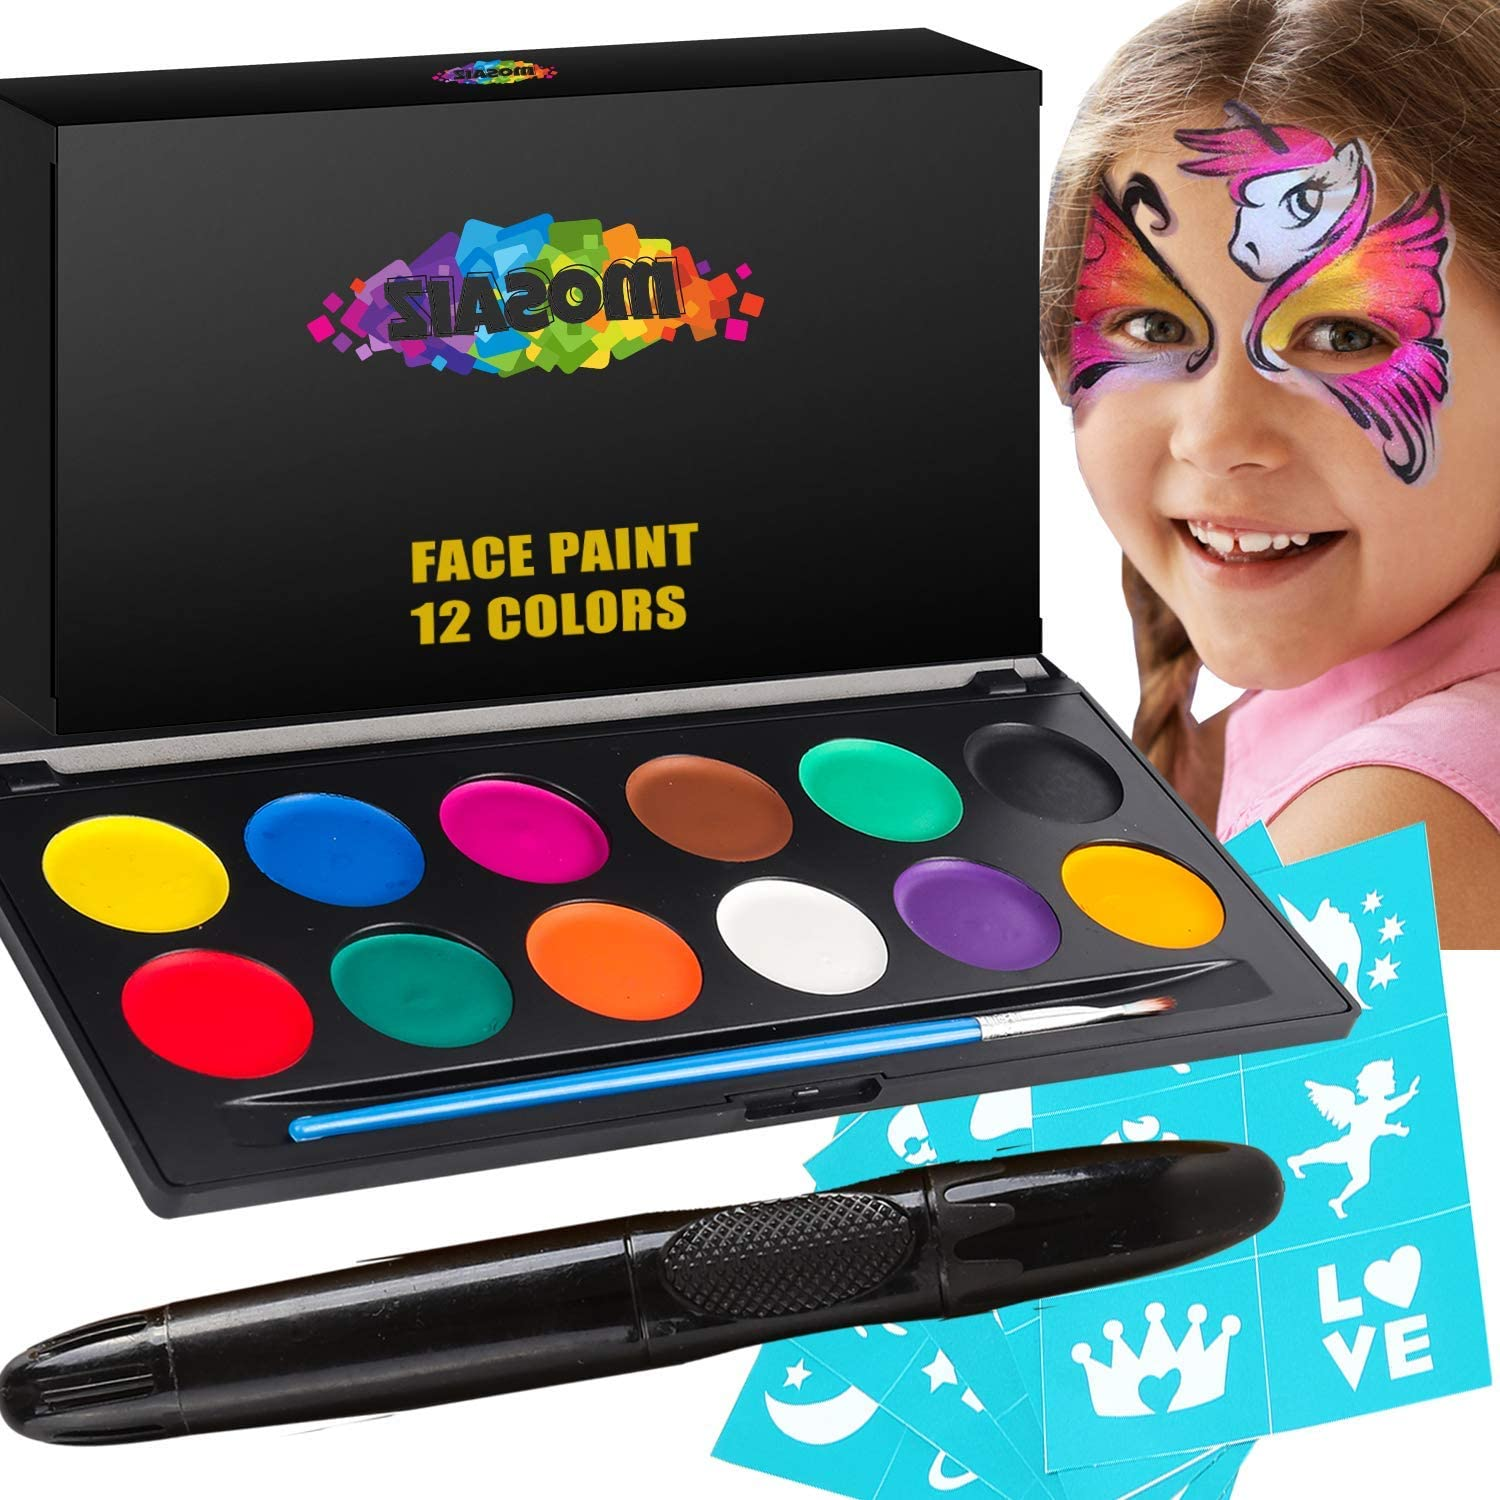 Top 9 Best Face Painting Kits (2020 Reviews & Buying Guide) 2